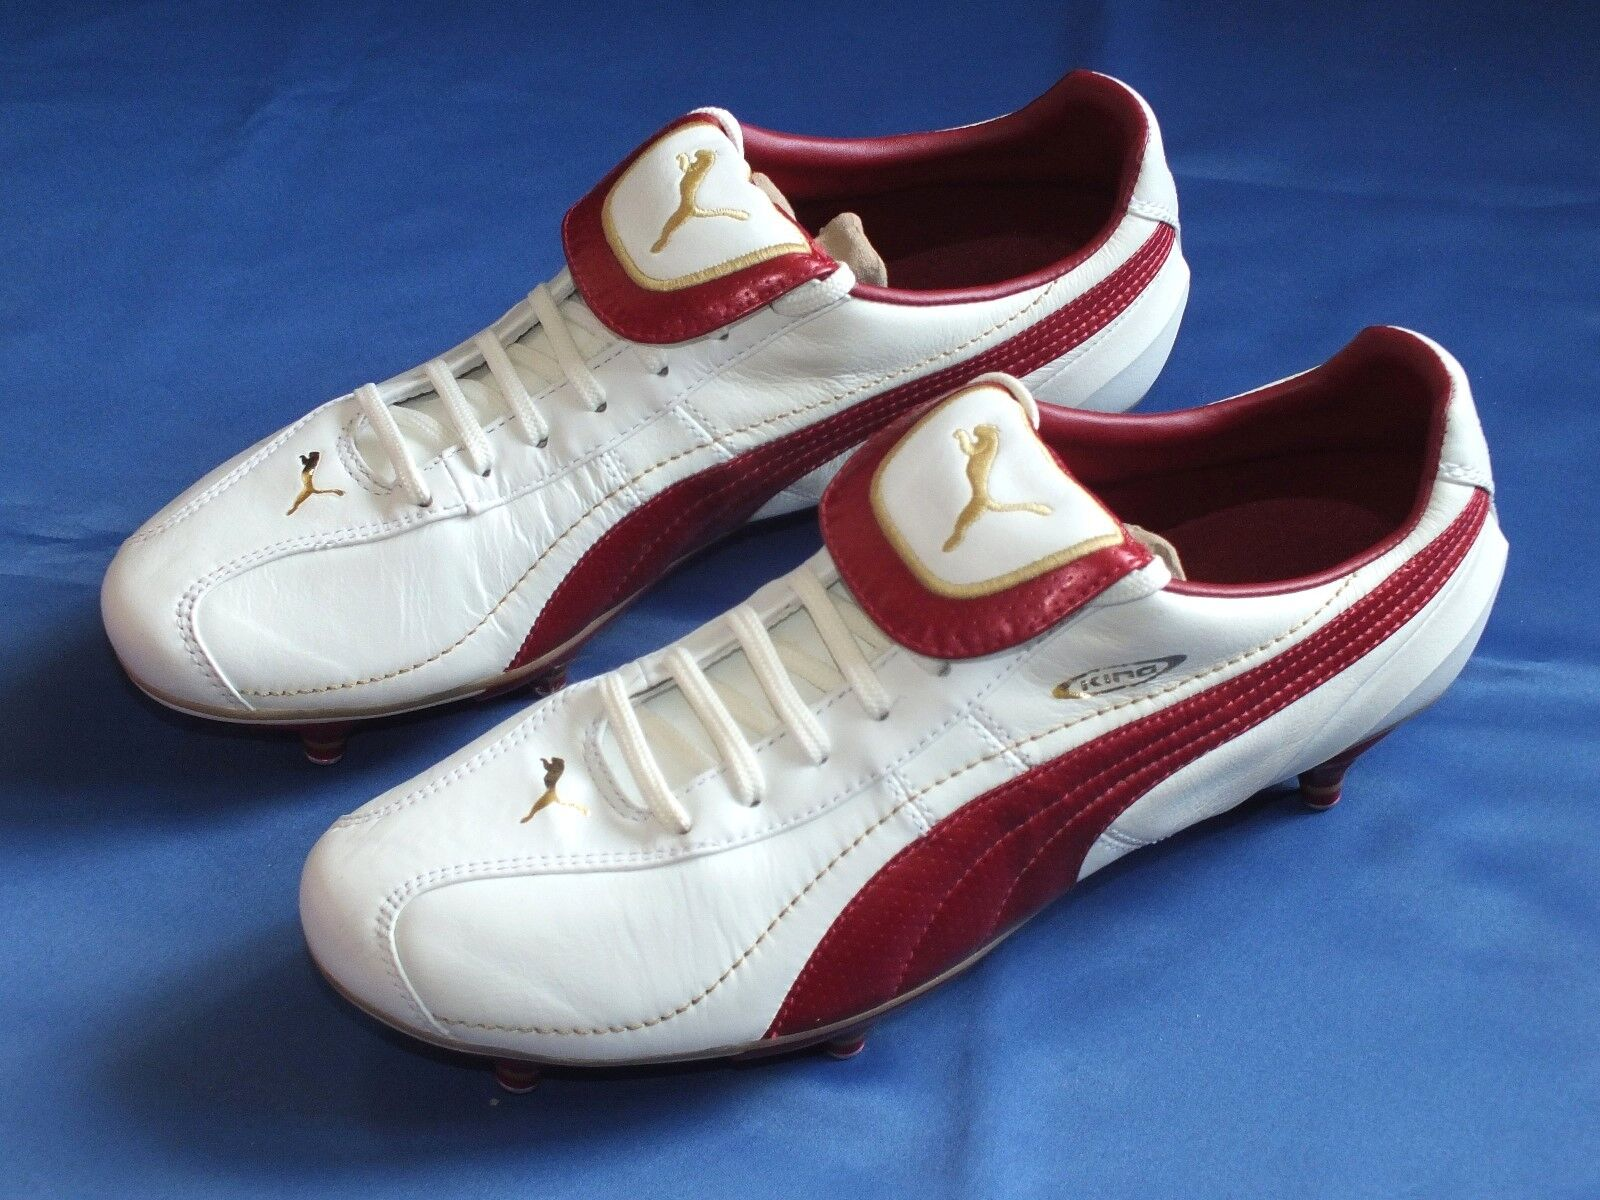 New Puma Retro Soft Ground Grass Weiß ROT & & & Gold Leder Football Stiefel UK 9 d726a5